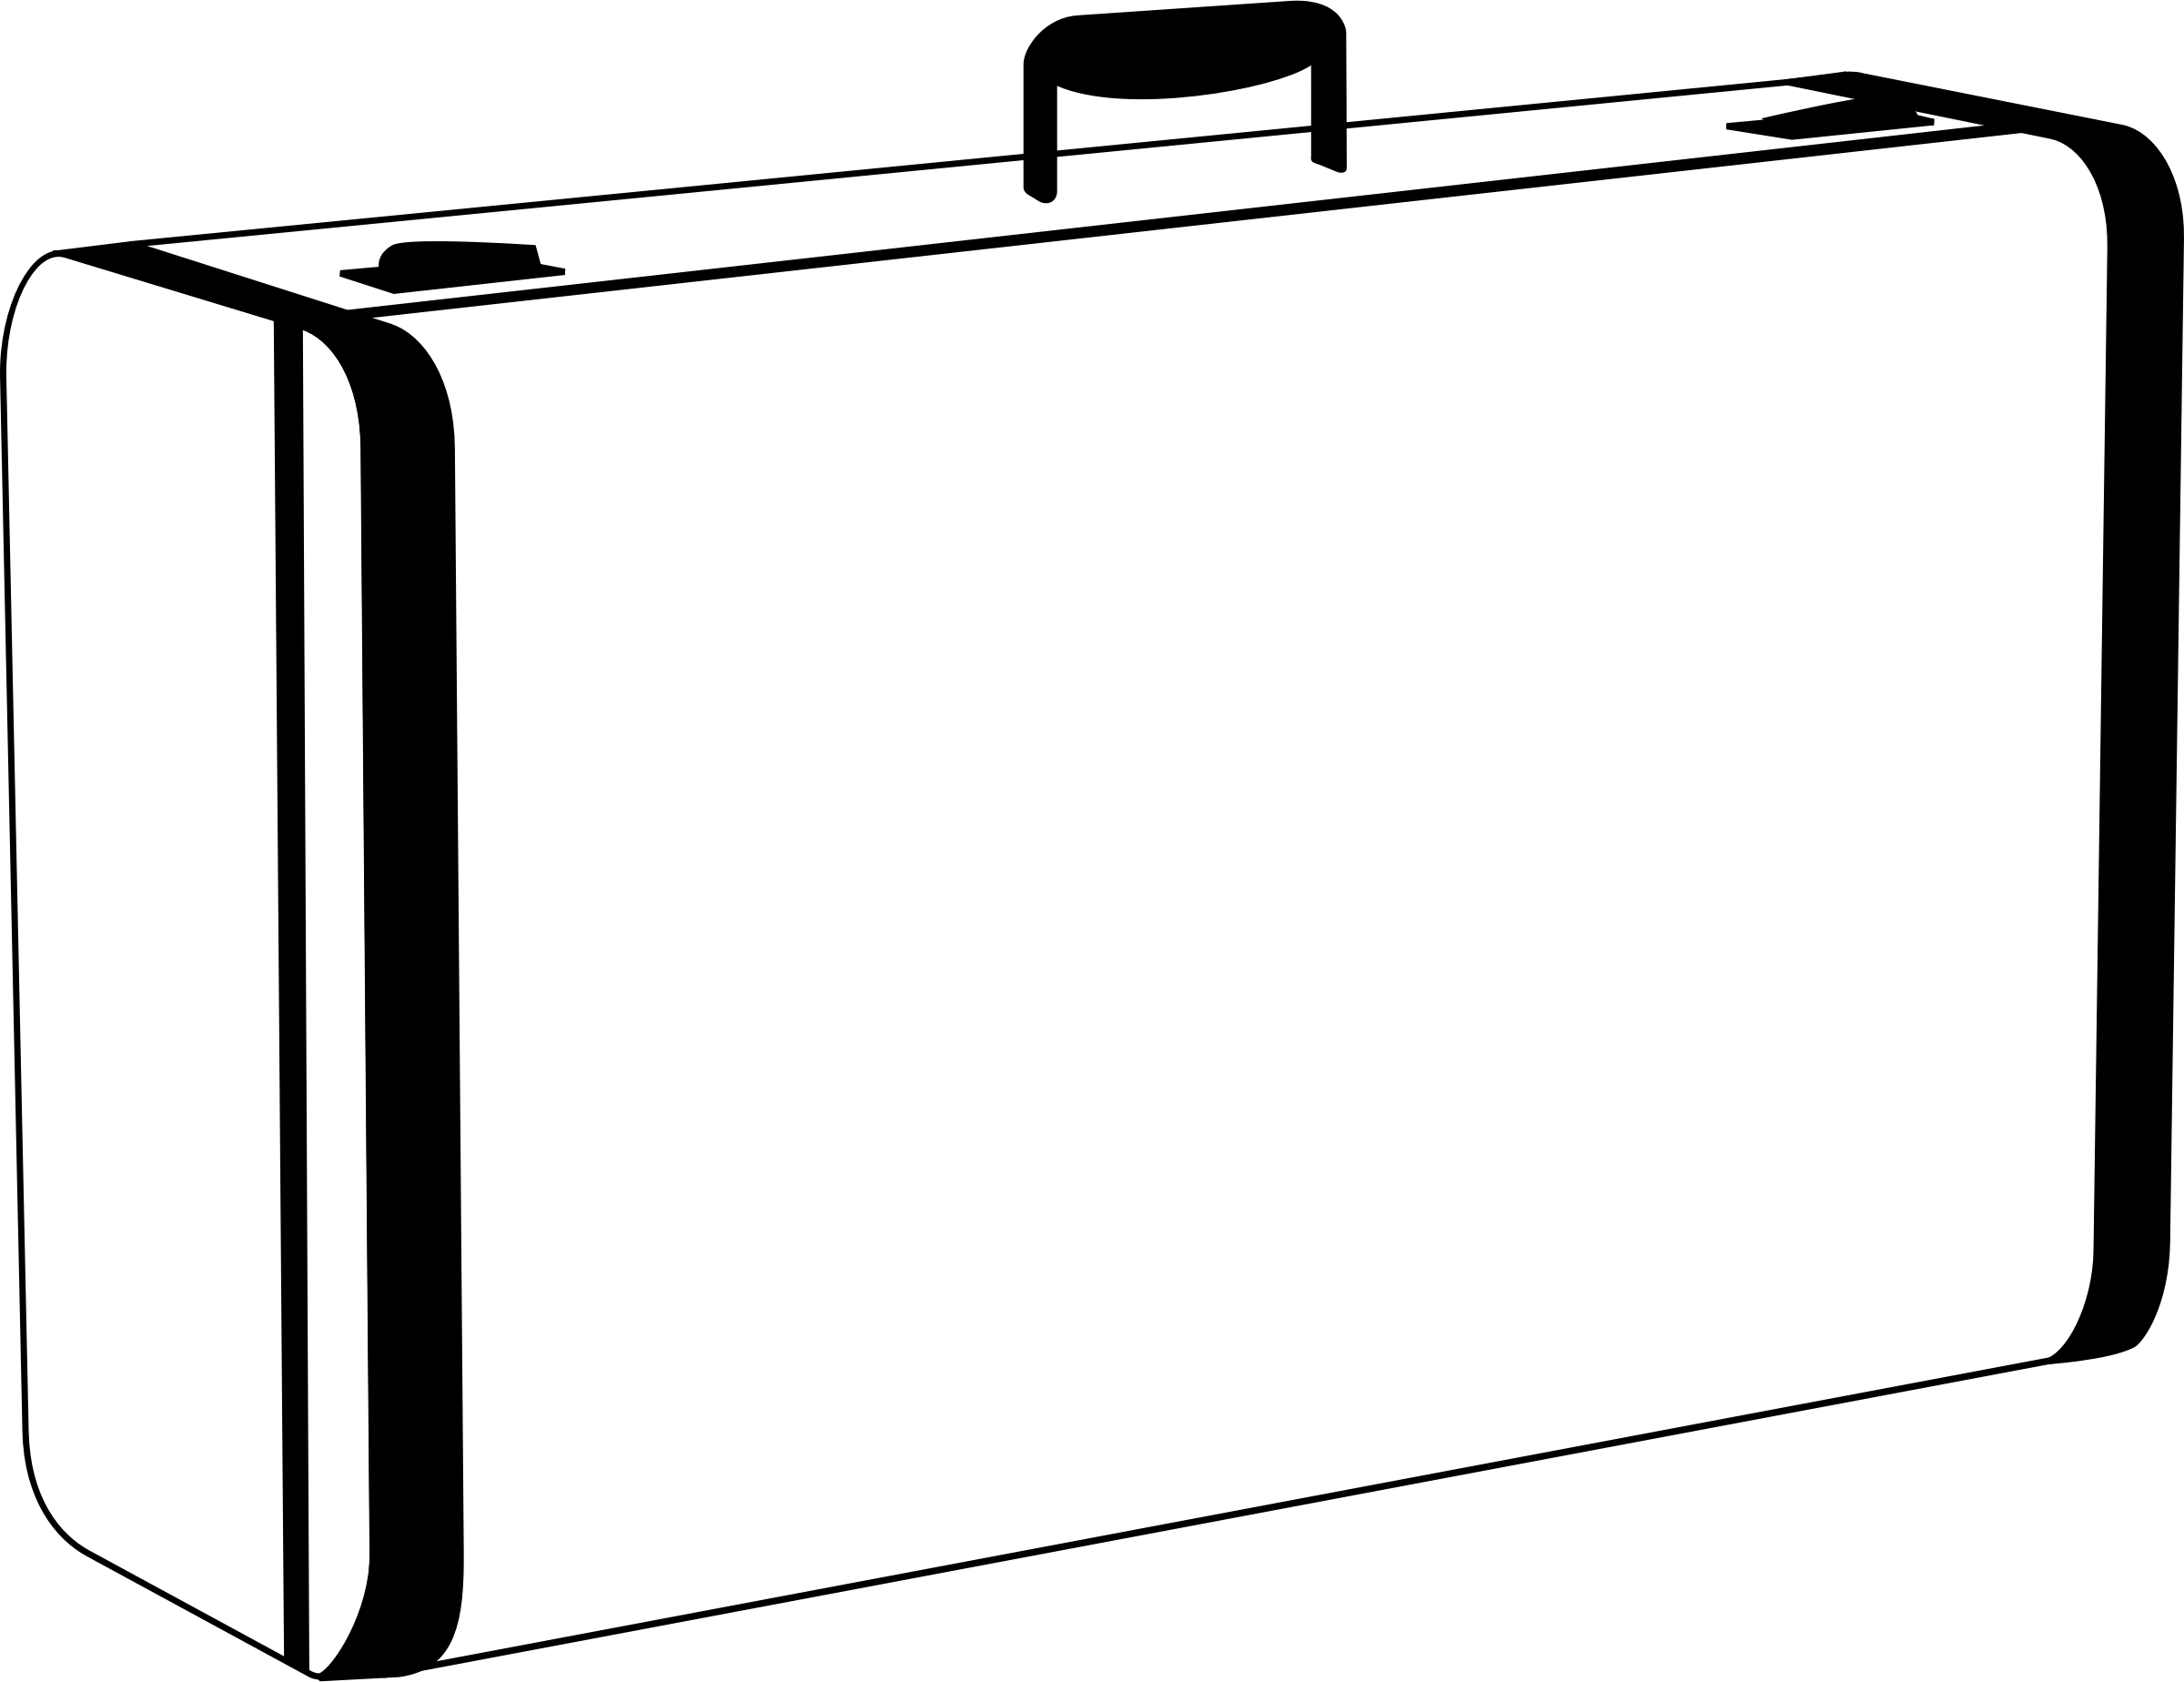 jpg royalty free stock  collection of suitcase. Luggage clipart black and white